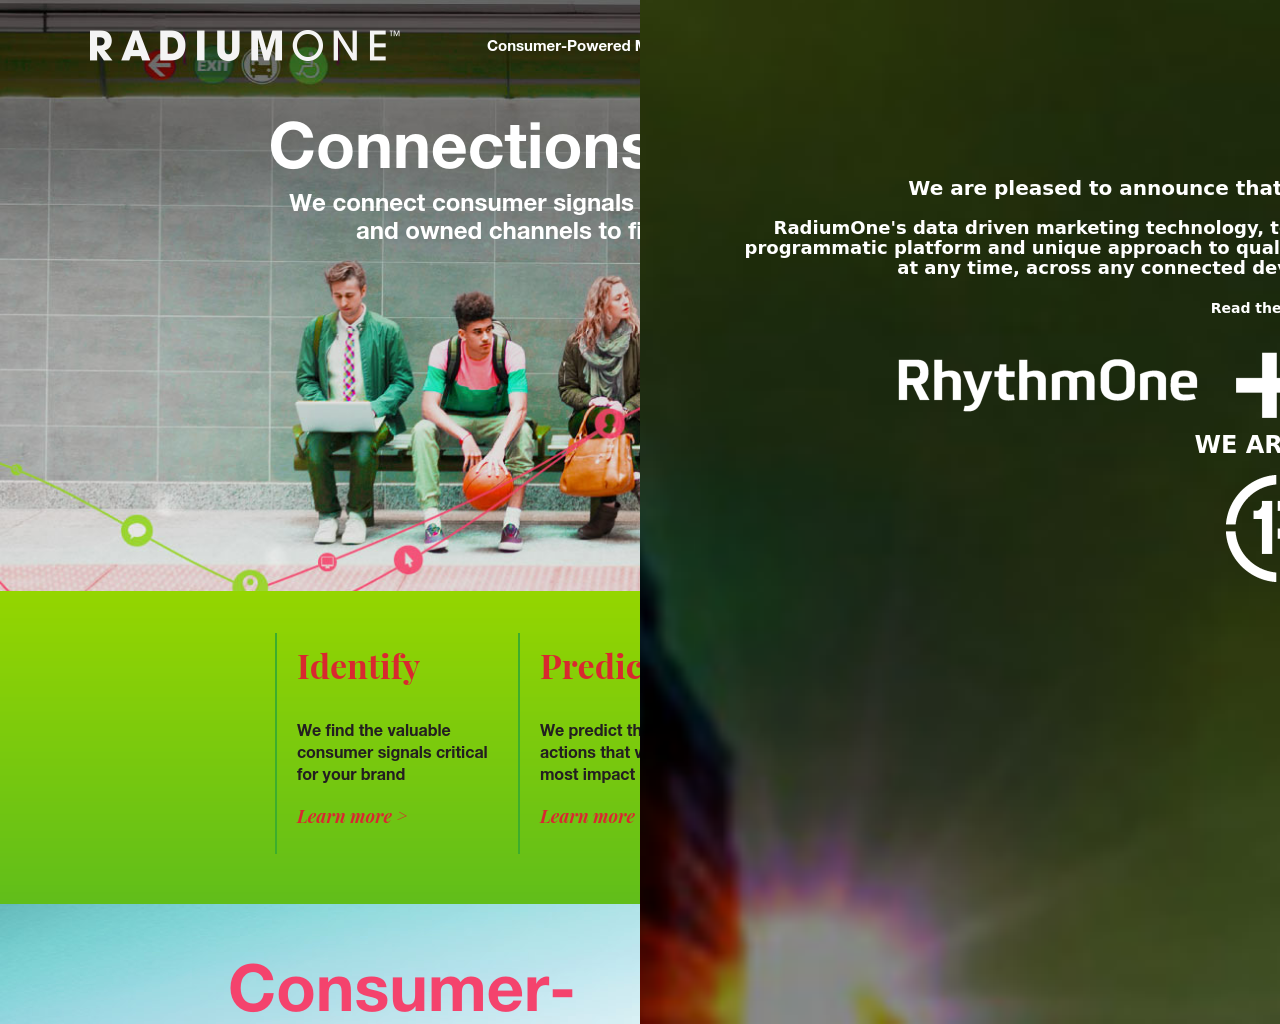 RadiumOne-Advertising-Reviews-Pricing